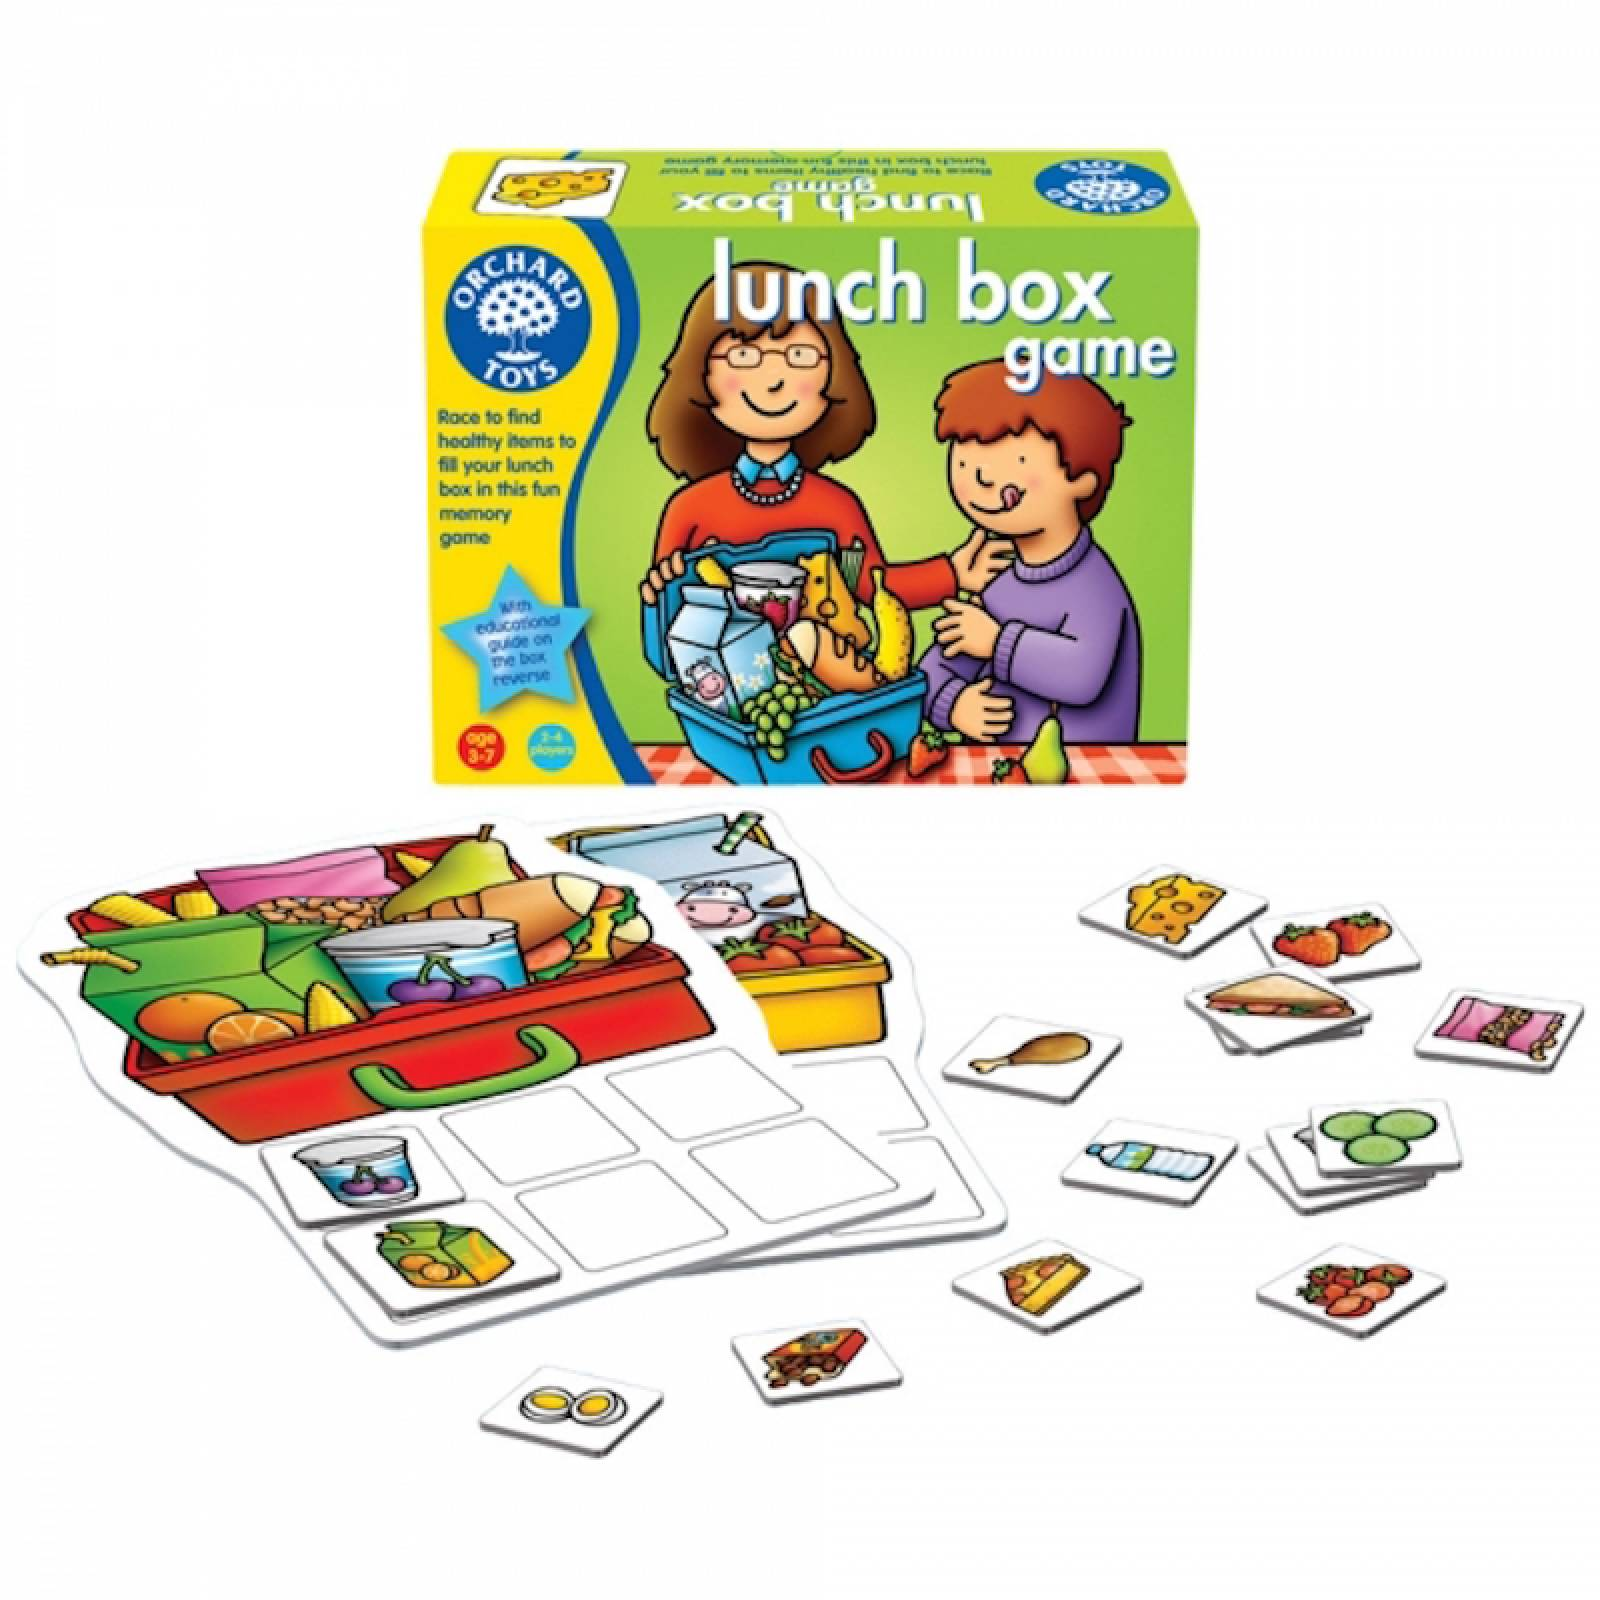 Lunch Box Game by Orchard Toys 3+ thumbnails